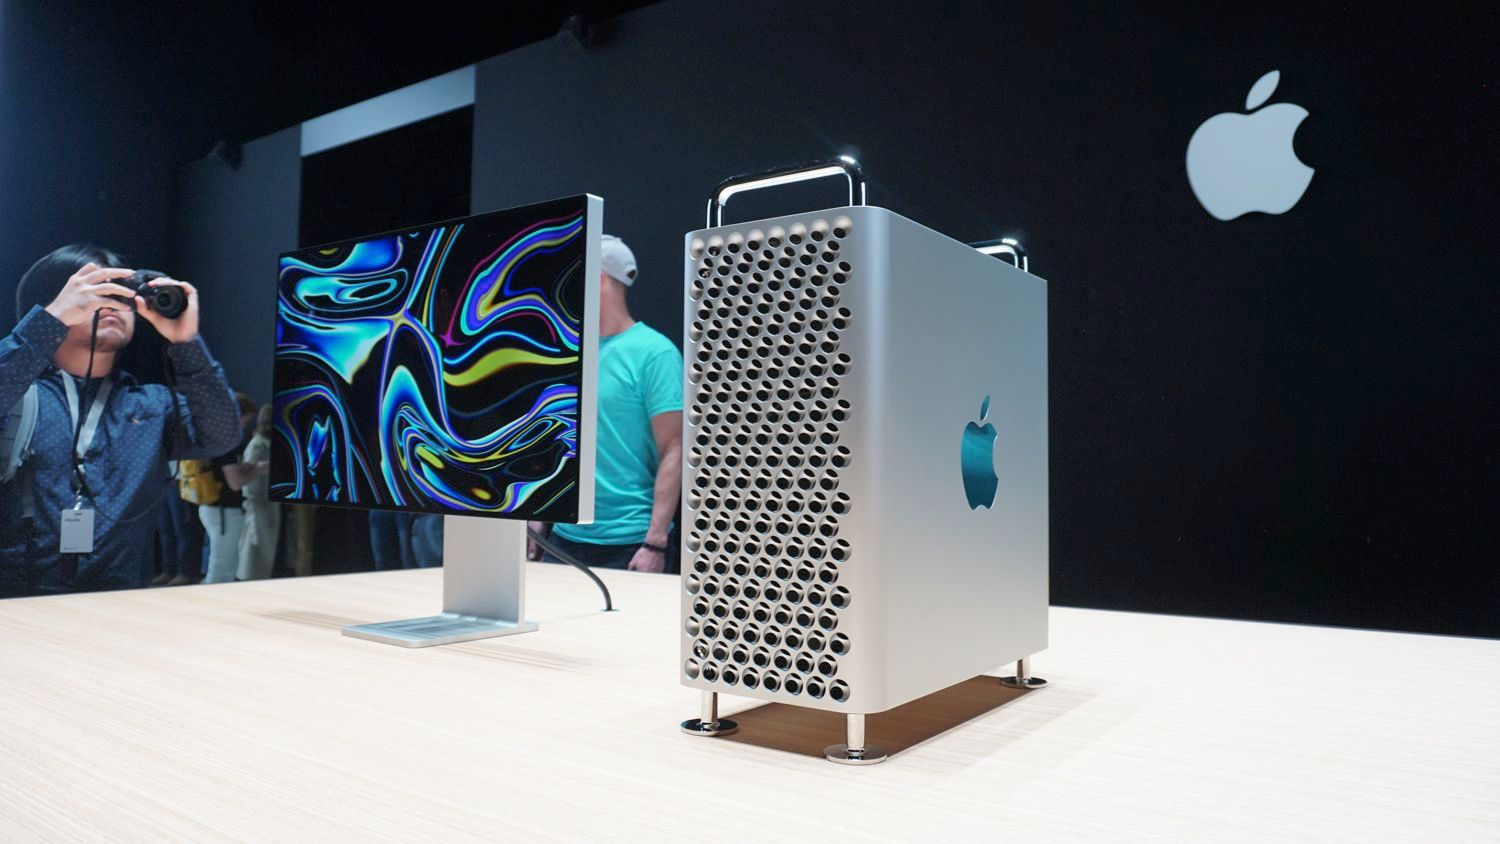 , Apple's new $6,000 Mac Pro is a monster of a computer inside and out, Travel Wire News |  Travel Newswire, Travel Wire News |  Travel Newswire